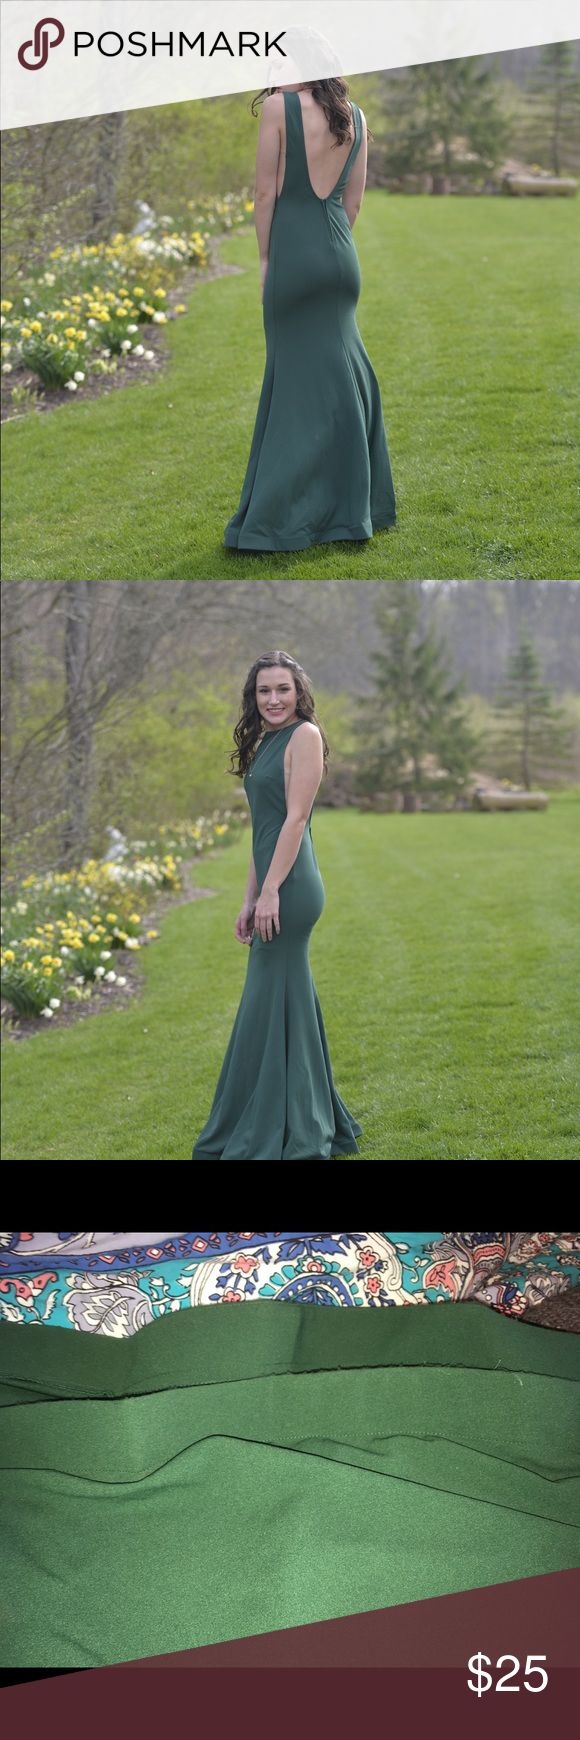 """Windsor Prom Dress Emerald green prom dress. High neck with low back :) tight through waist then flares towards bottom. I'm 5'7"""" and was able to wear heels with this dress. size 0, price negotiable ! Only worn once, gently used. Last pic shows snags at very bottom (not noticeable) the sides also have a tan/sheer material Windsor Dresses Prom #tanpromheels"""